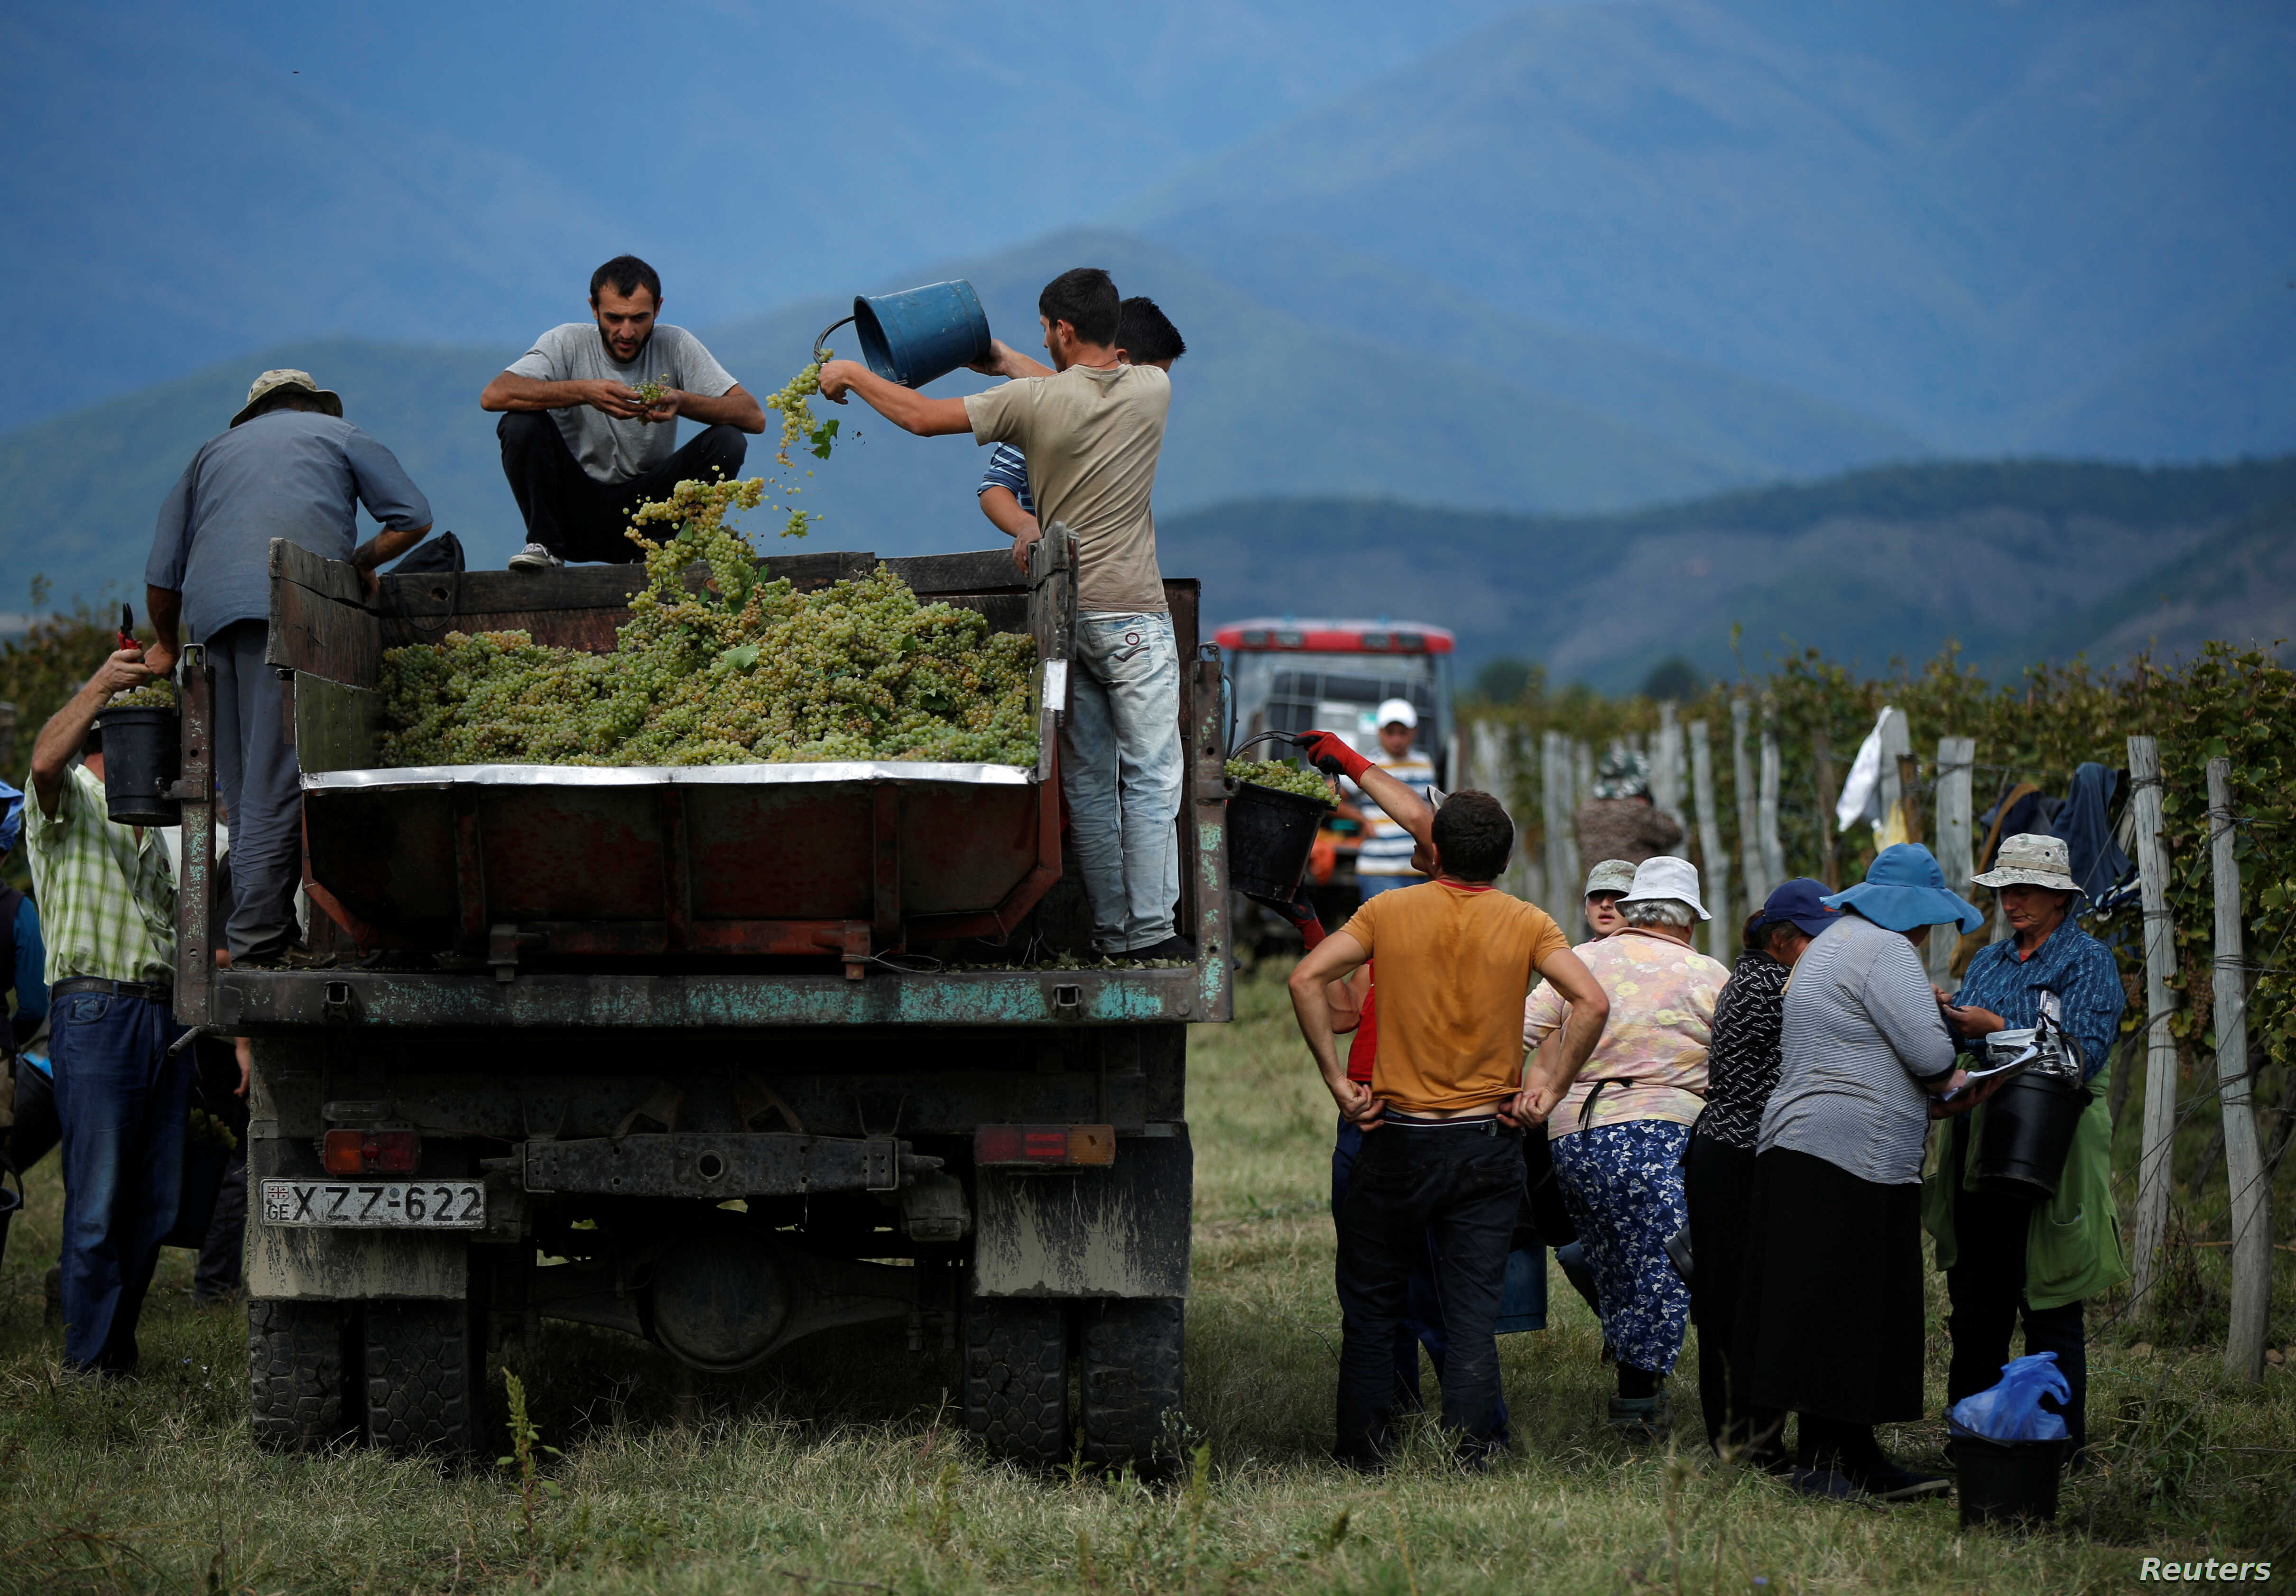 Workers load a trailer with grapes for wine during harvest in the village of Lomistsikhe, in Kakheti region, Georgia, Sept. 28, 2016.